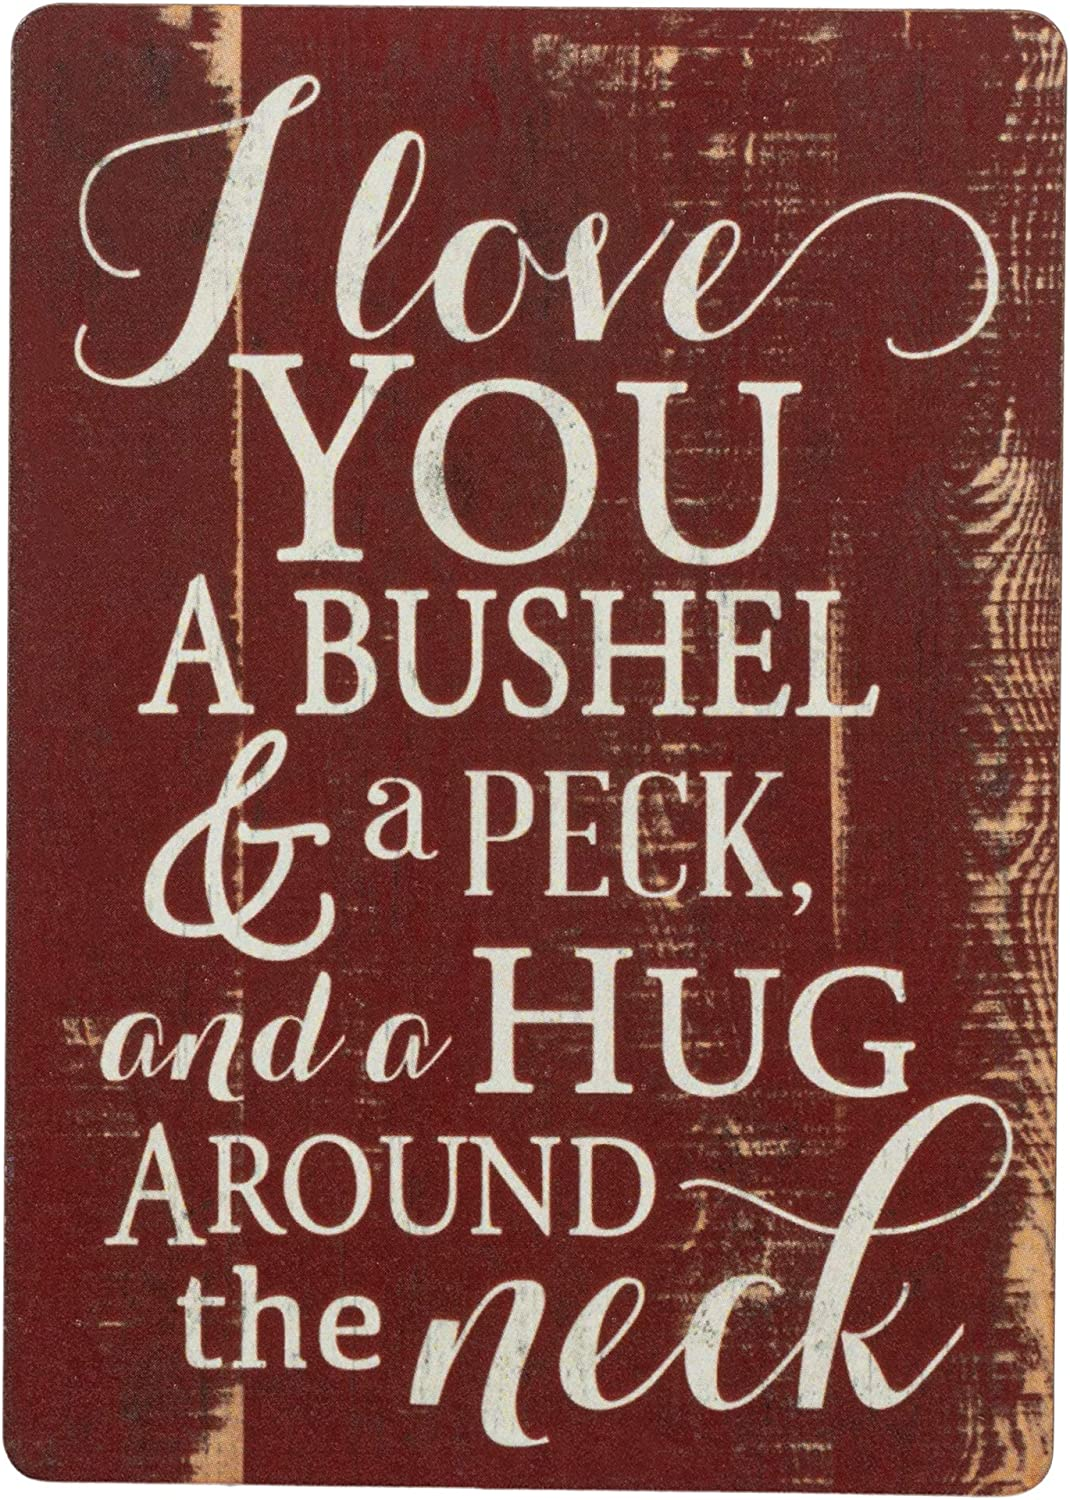 I Love You A Bushel & A Peck Red Distressed Wood Look 3 x 4 Inch Wood Lithograph Magnet